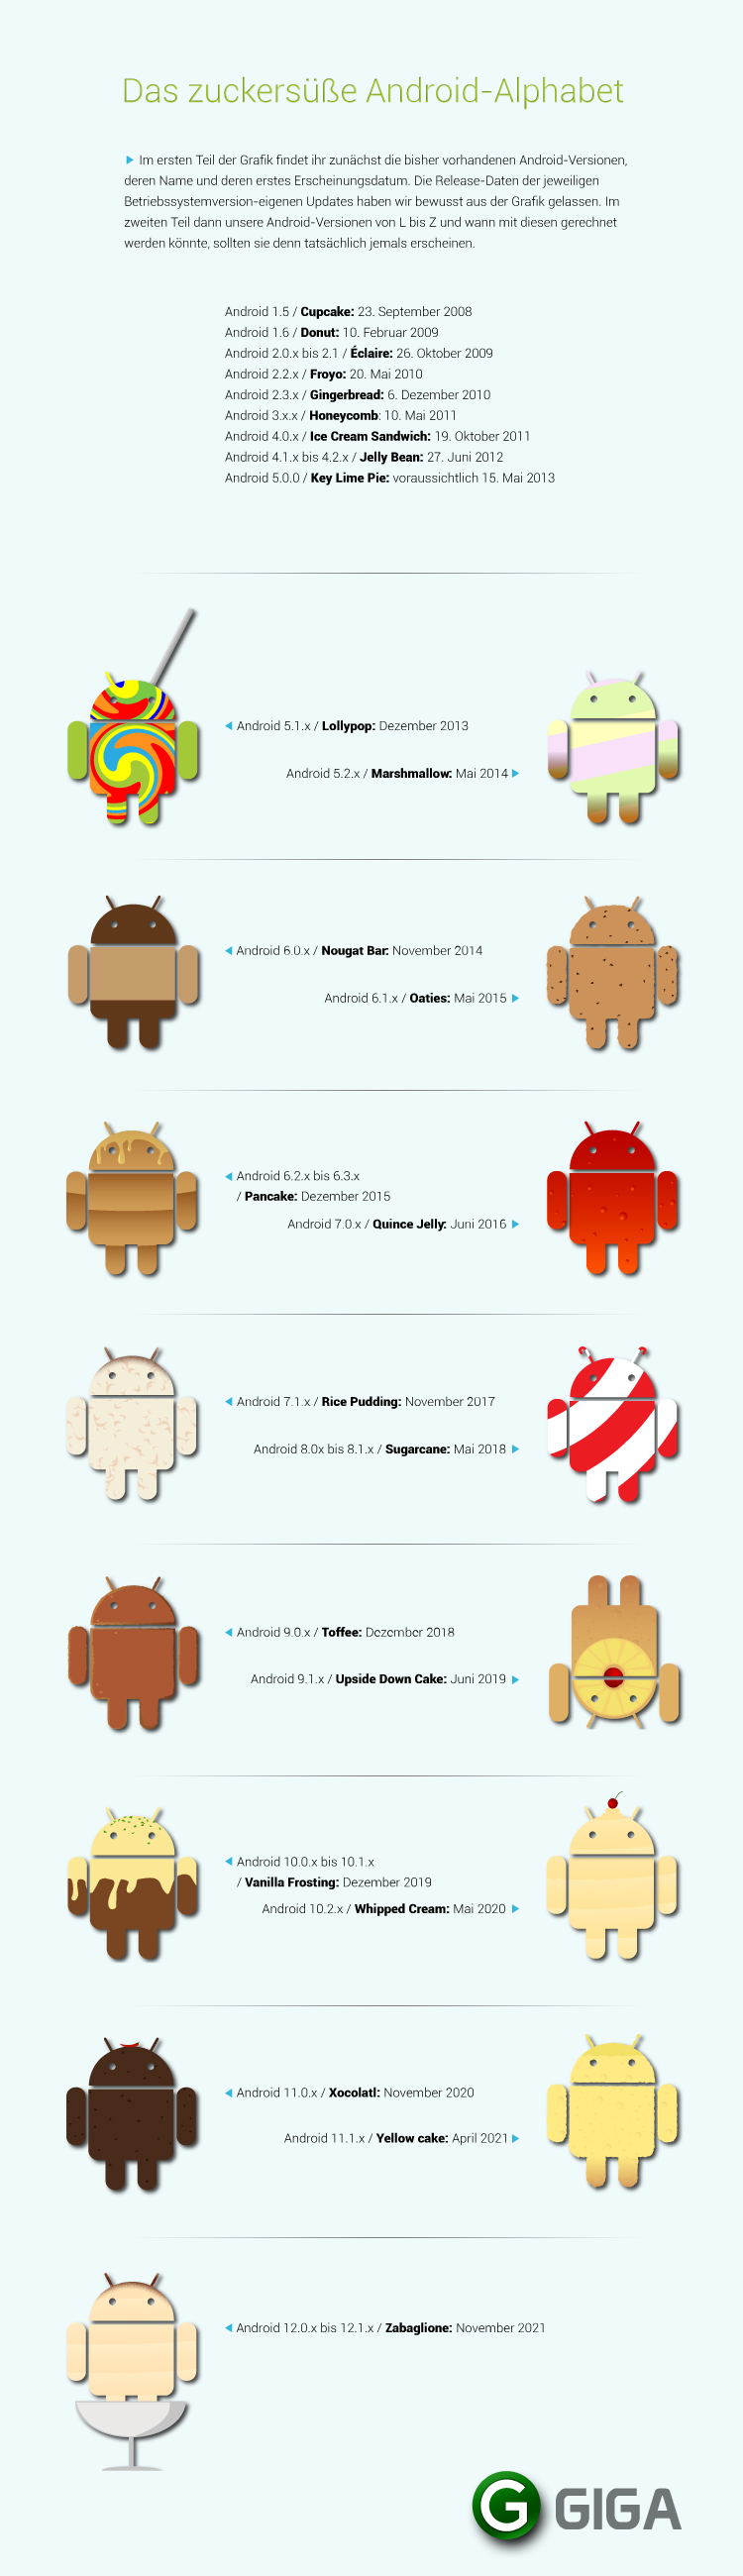 GIGA-future-android-versions